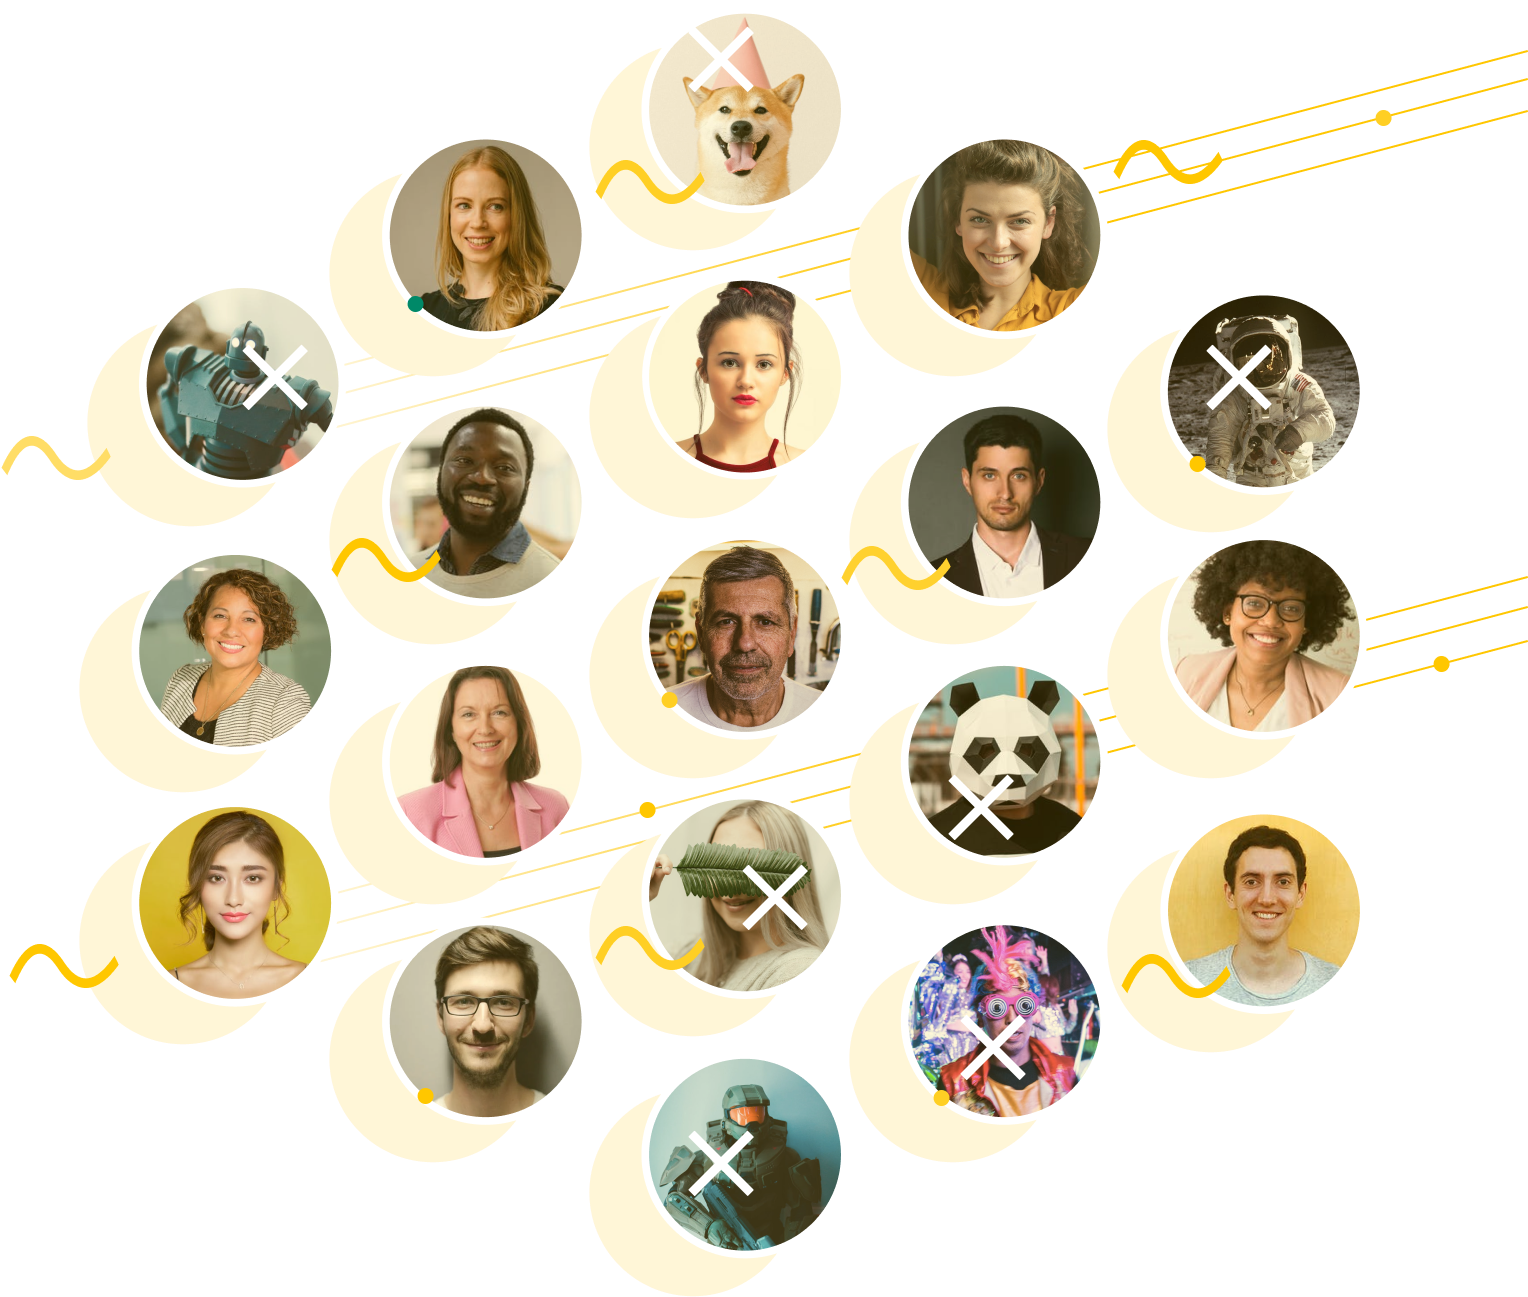 Header image showing a group of user avatars.